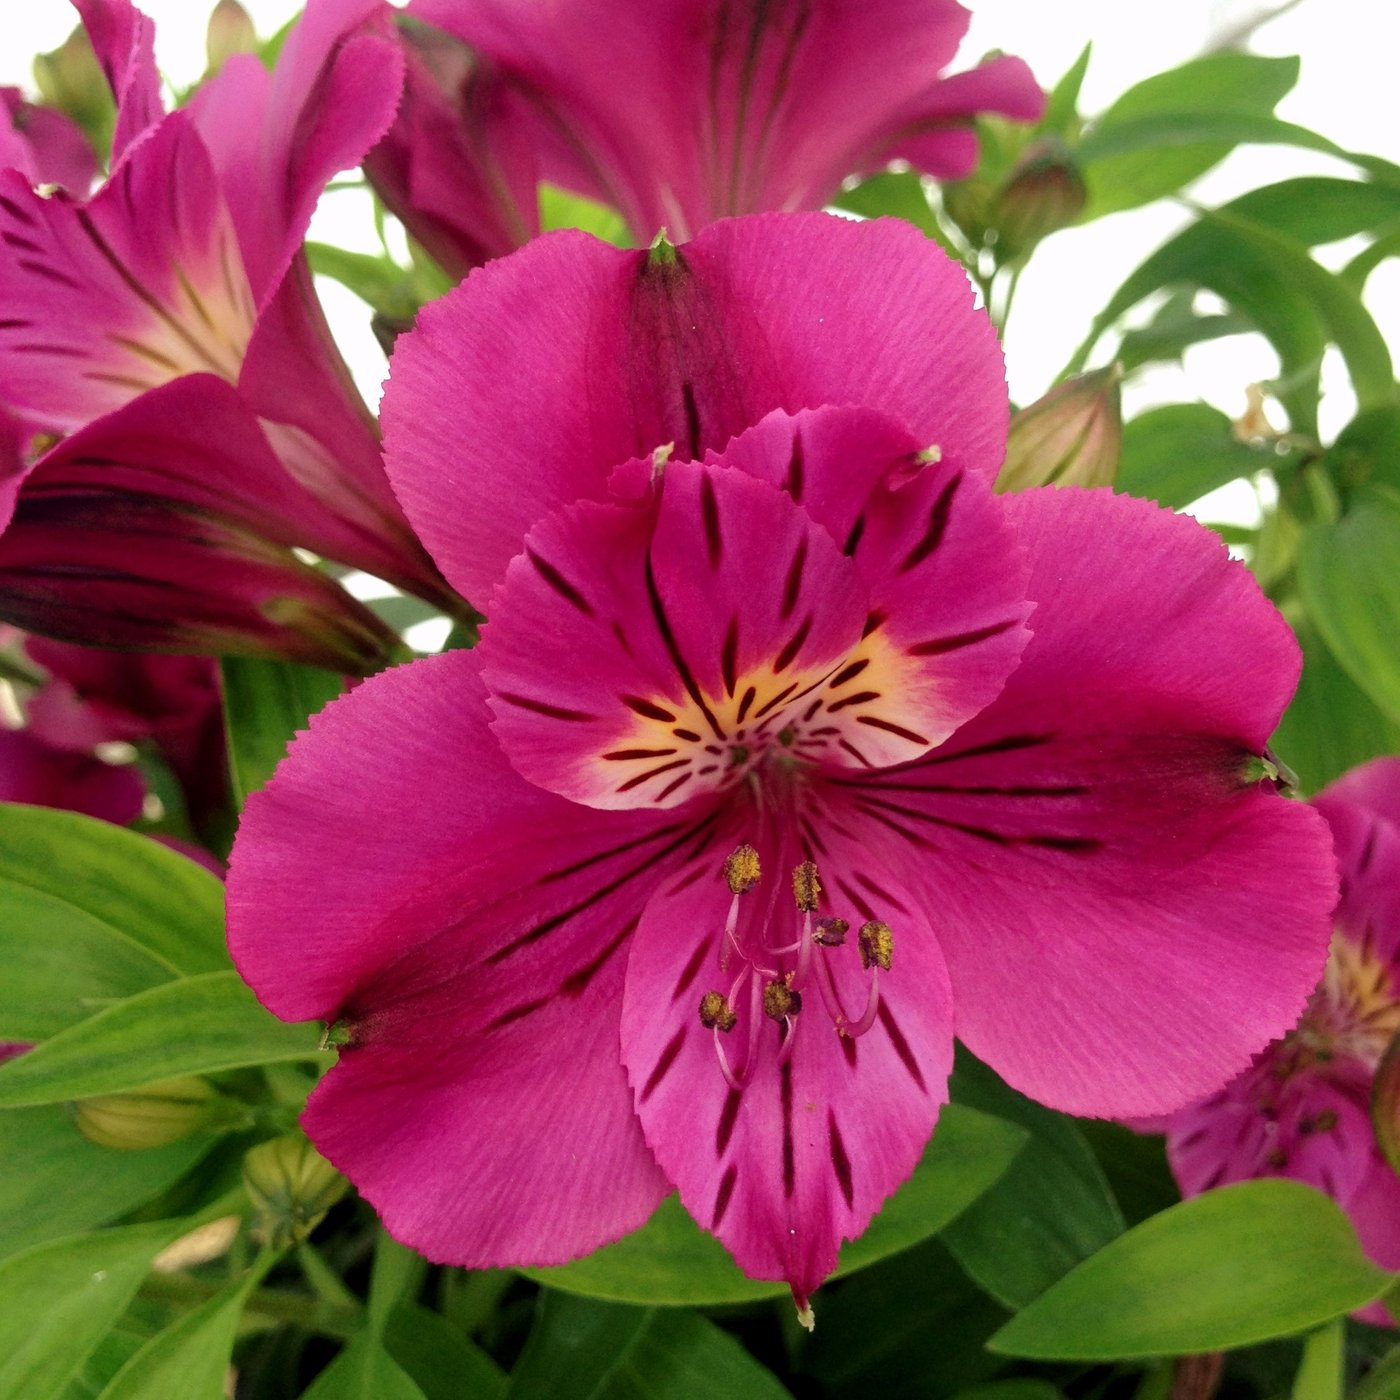 Pueple alstroemeria flowers pictures